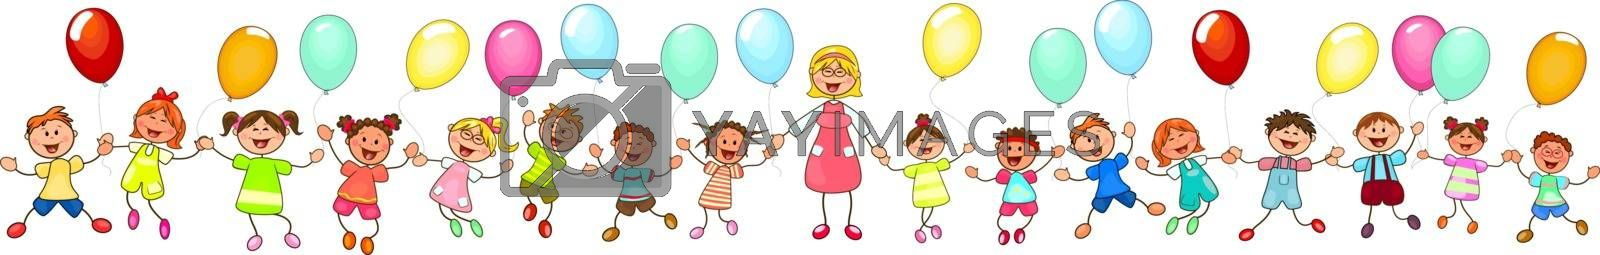 Joyful little children and a teacher. A group of happy, smiling children with balloons. A group of children with a teacher on a walk. Group of cheerful, smiling children on a white background. Cartoon joyful children.